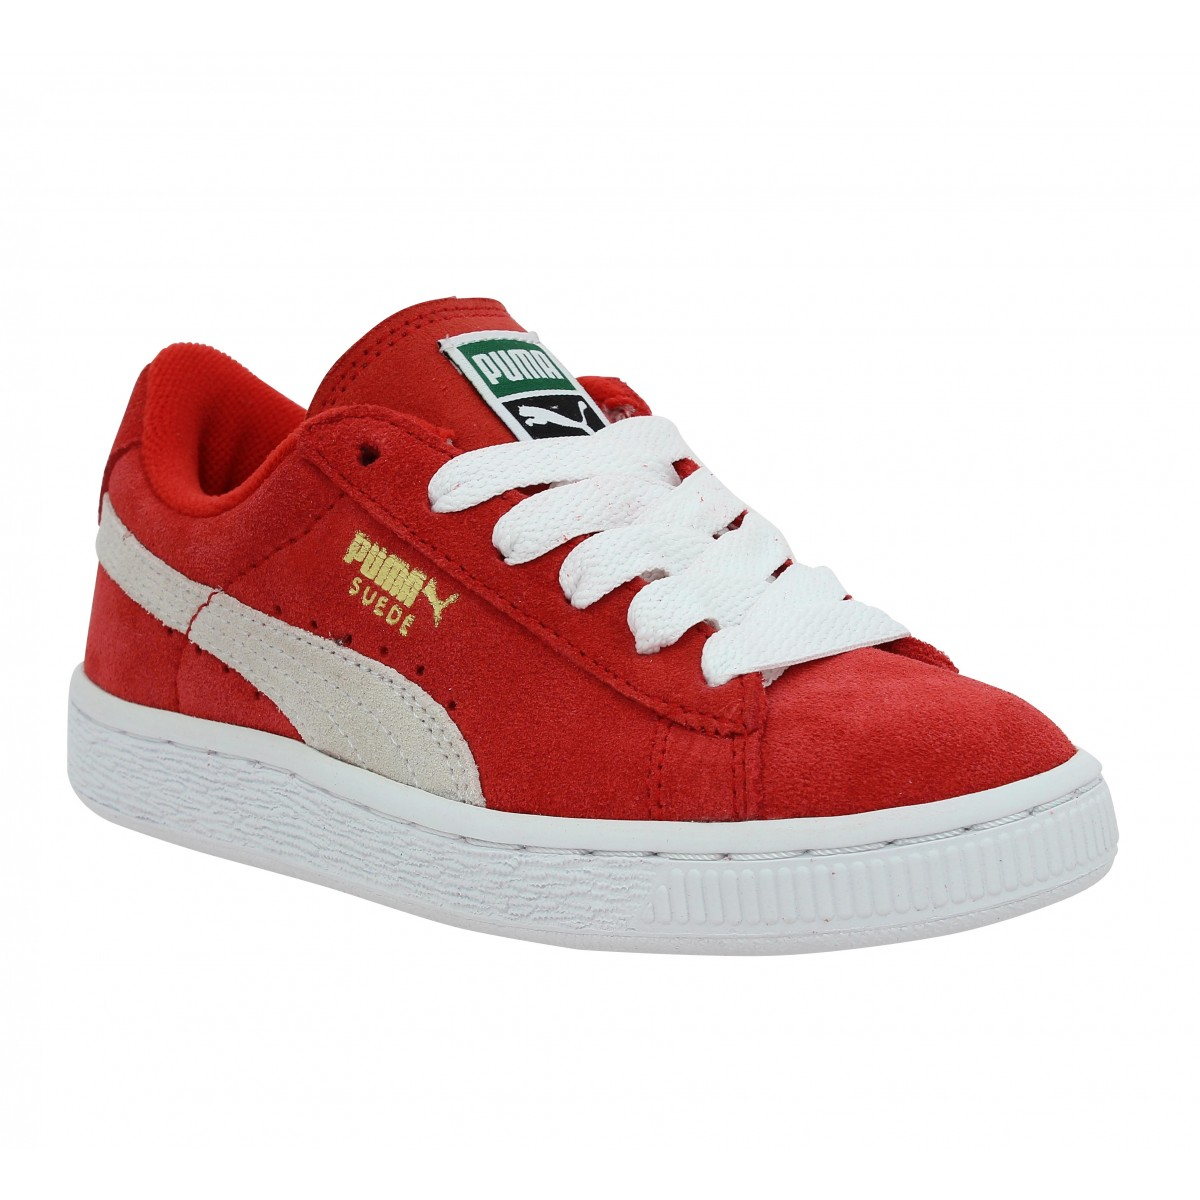 Puma Enfant Suede Jr -29-rouge